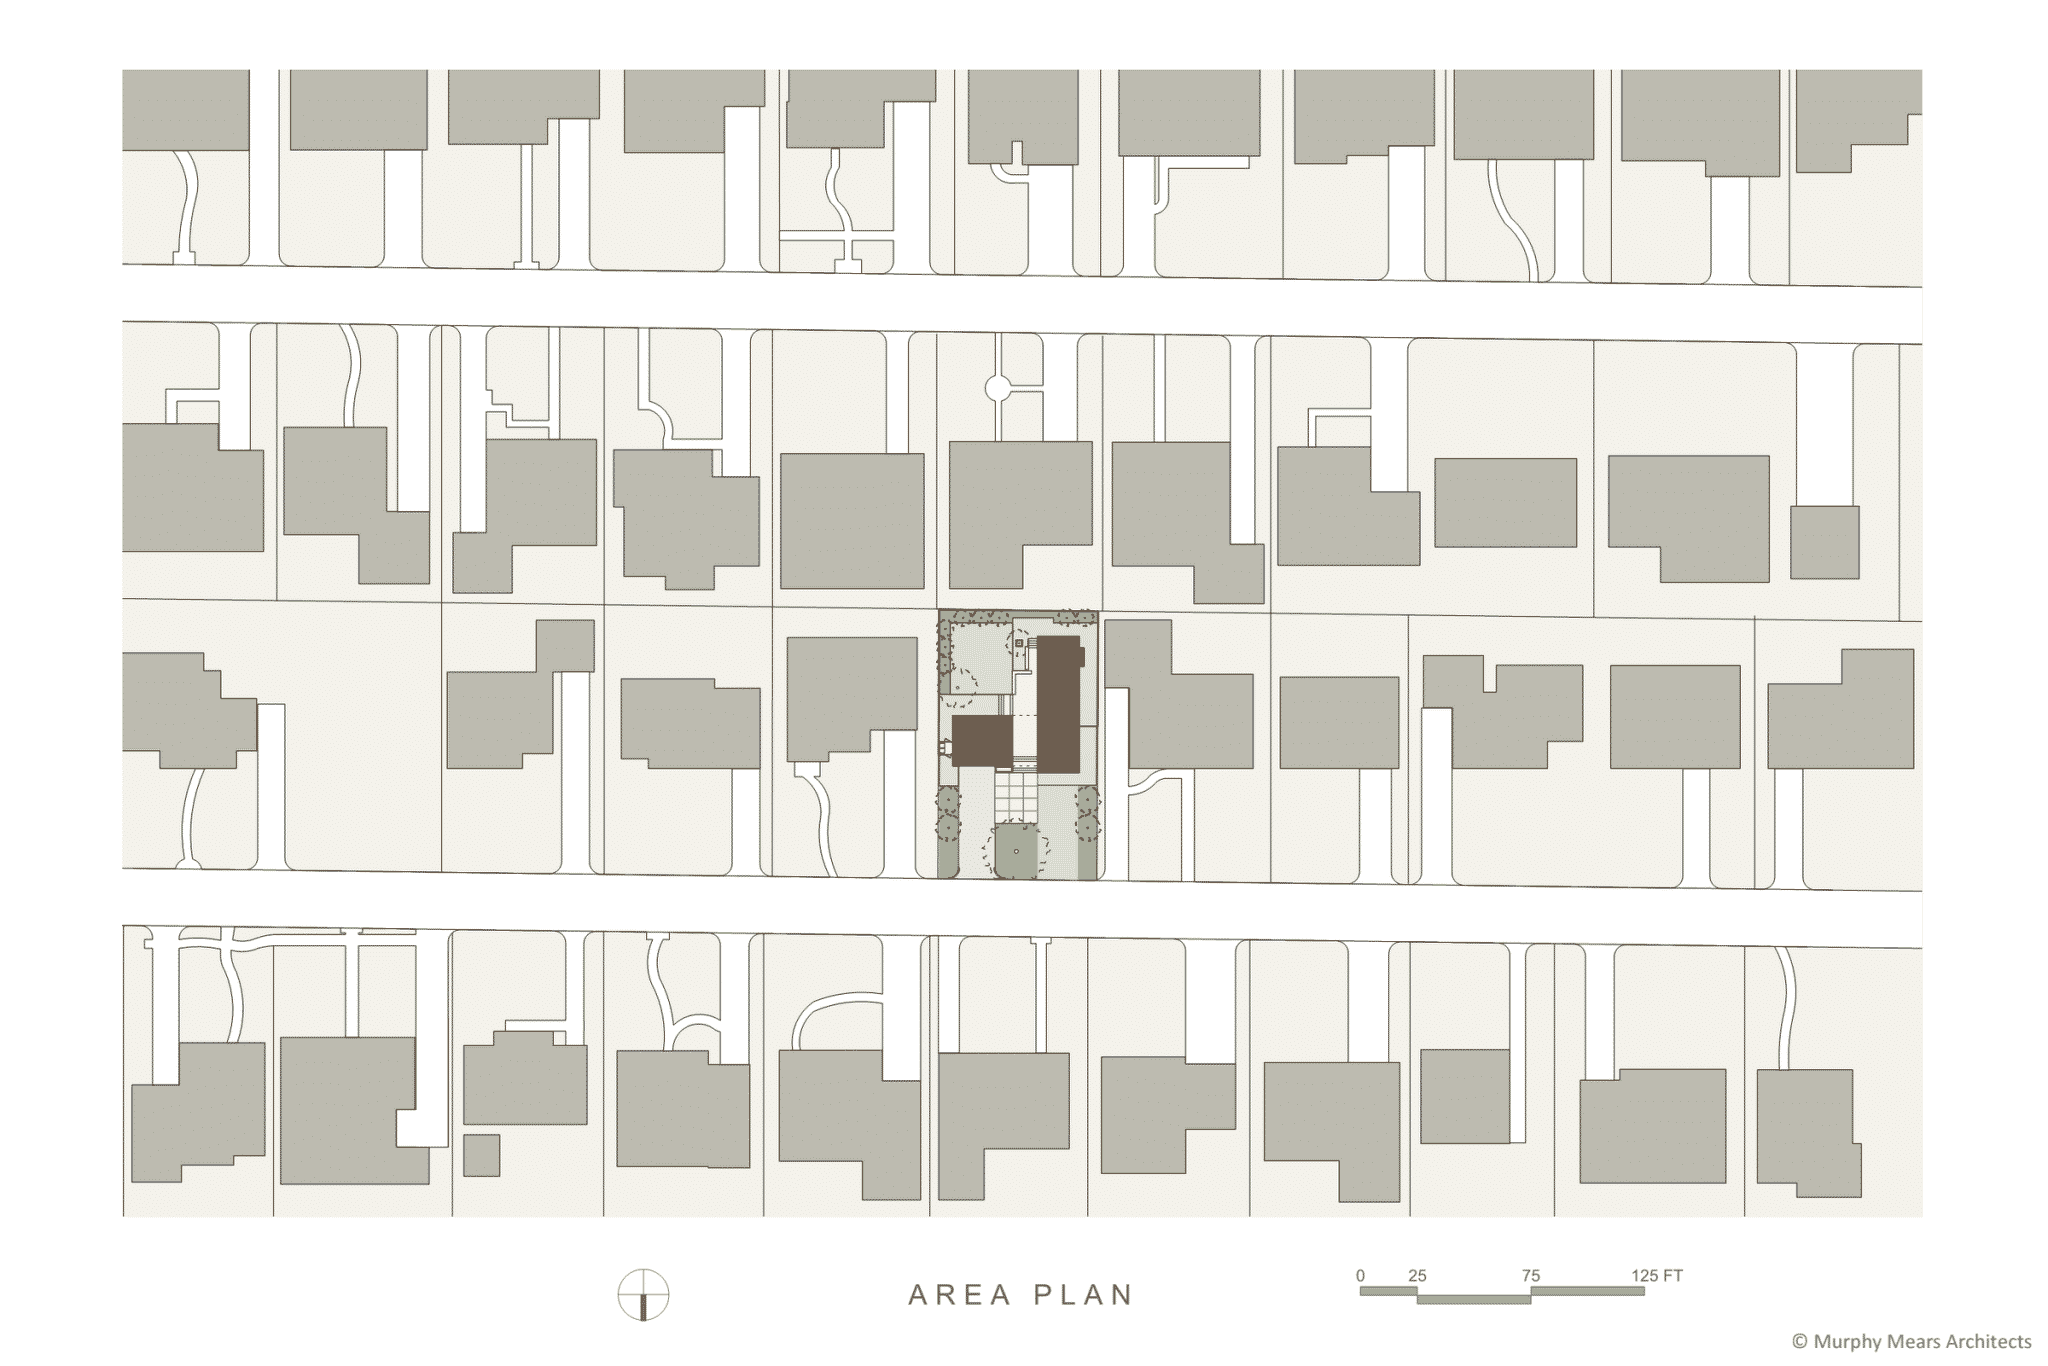 Site plan within the suburban neighborhood context.